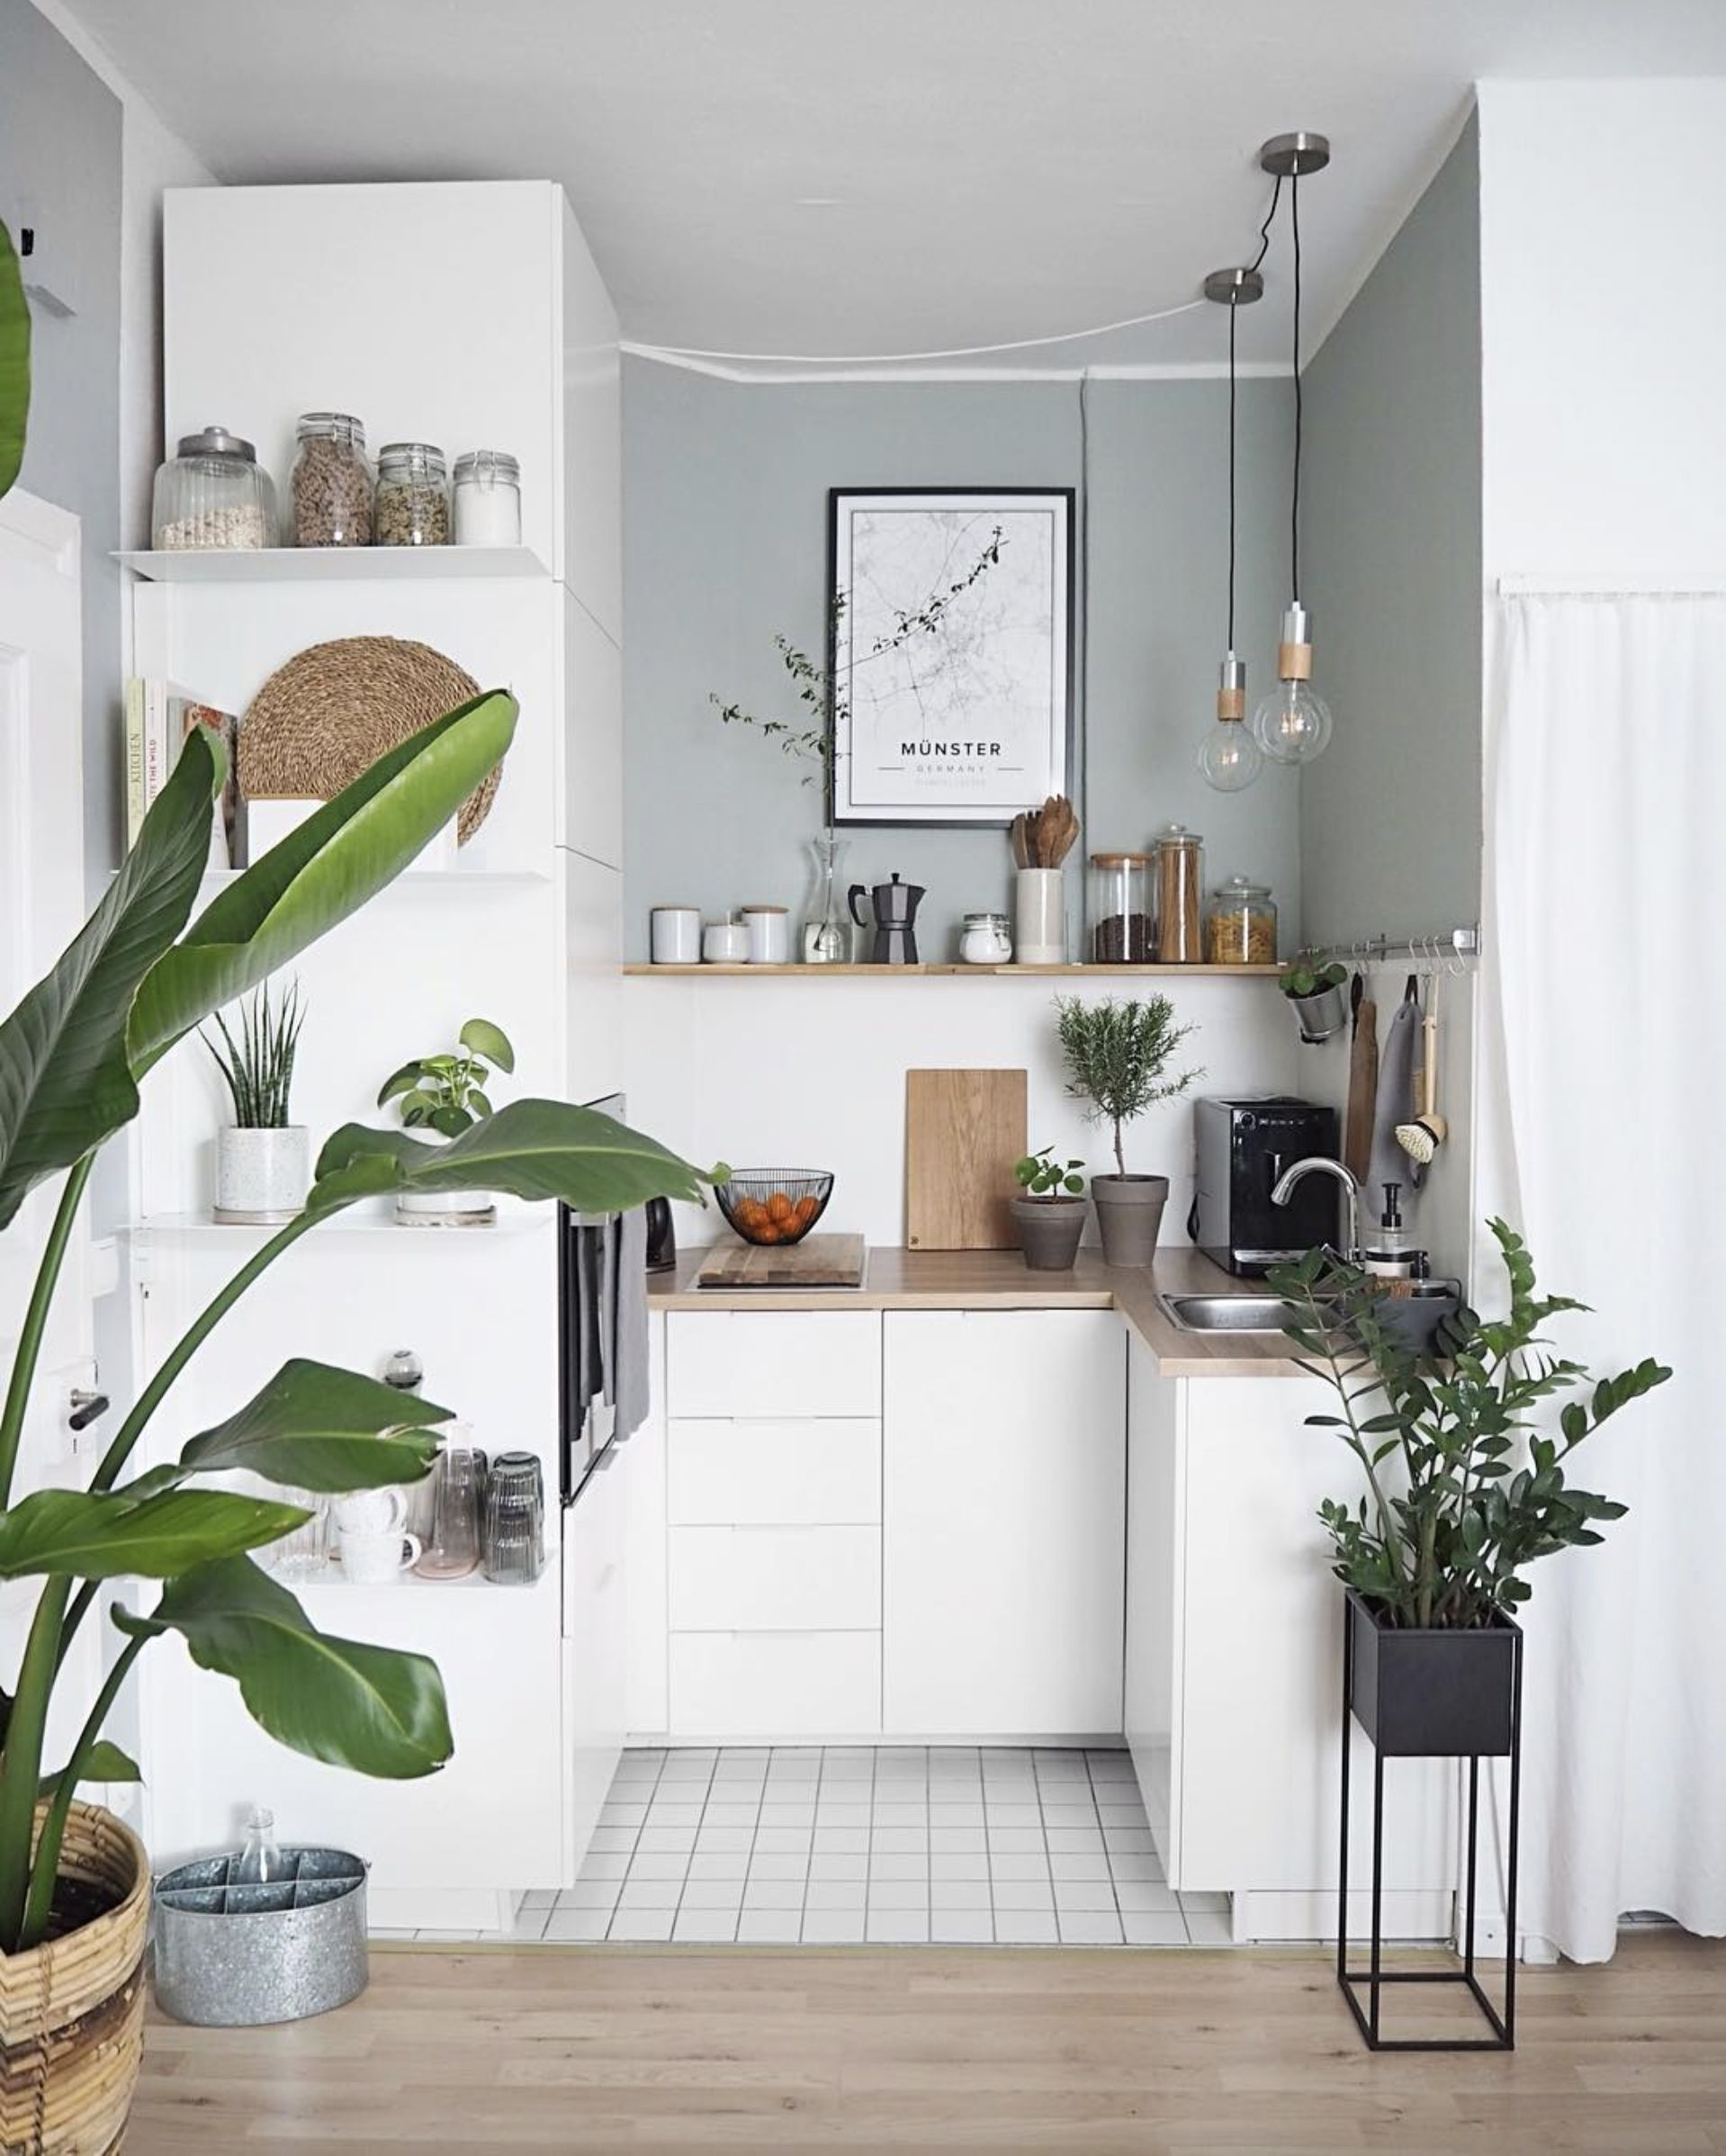 kleine küche ideen #smallkitchendecoratingideas in 2020